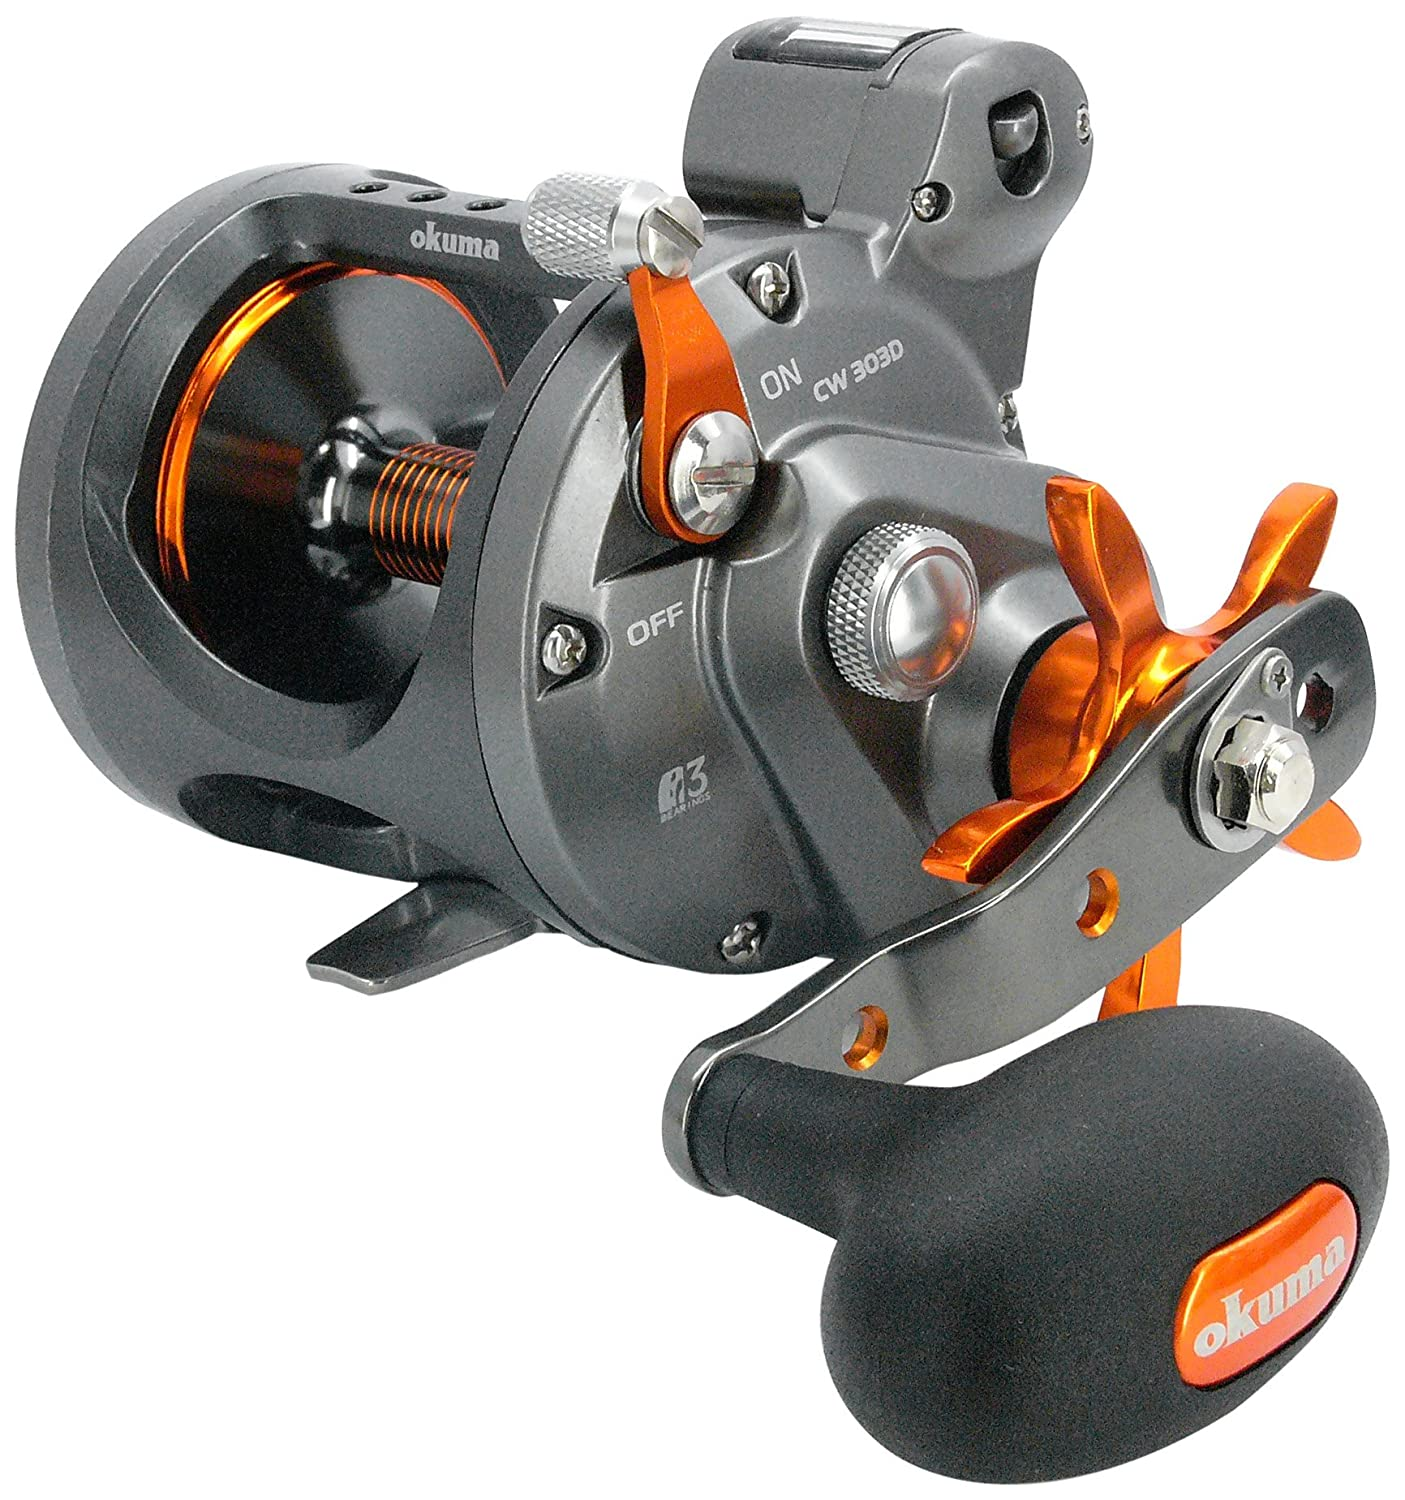 Okuma Cold Water Linecounter Trolling Reel Cw-453d (Right Hand), 330 Yds-25lb  B008GQ6X4M